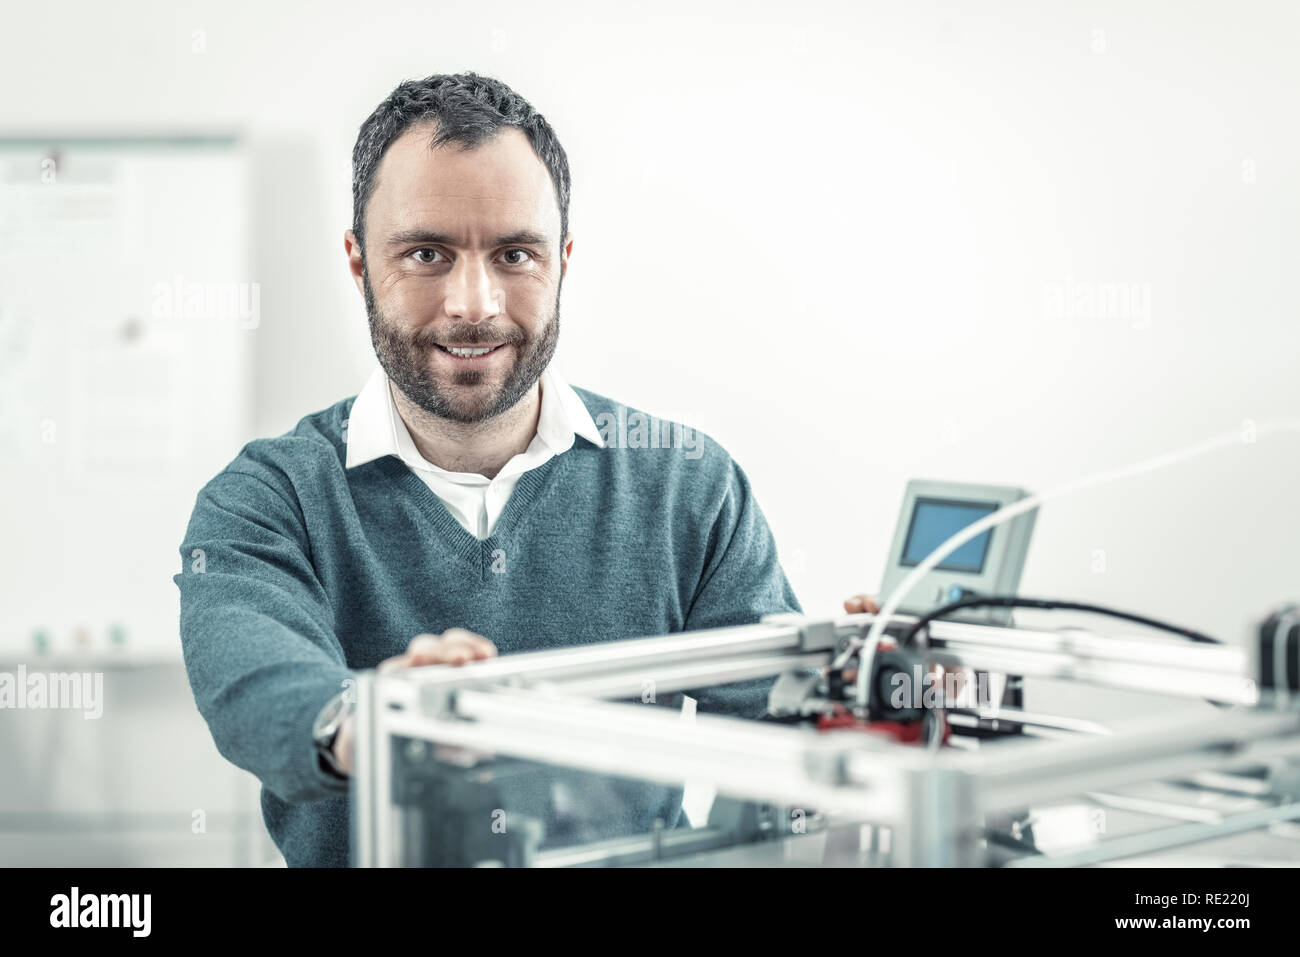 Delighted adult nice man smiling near 3d printer Stock Photo